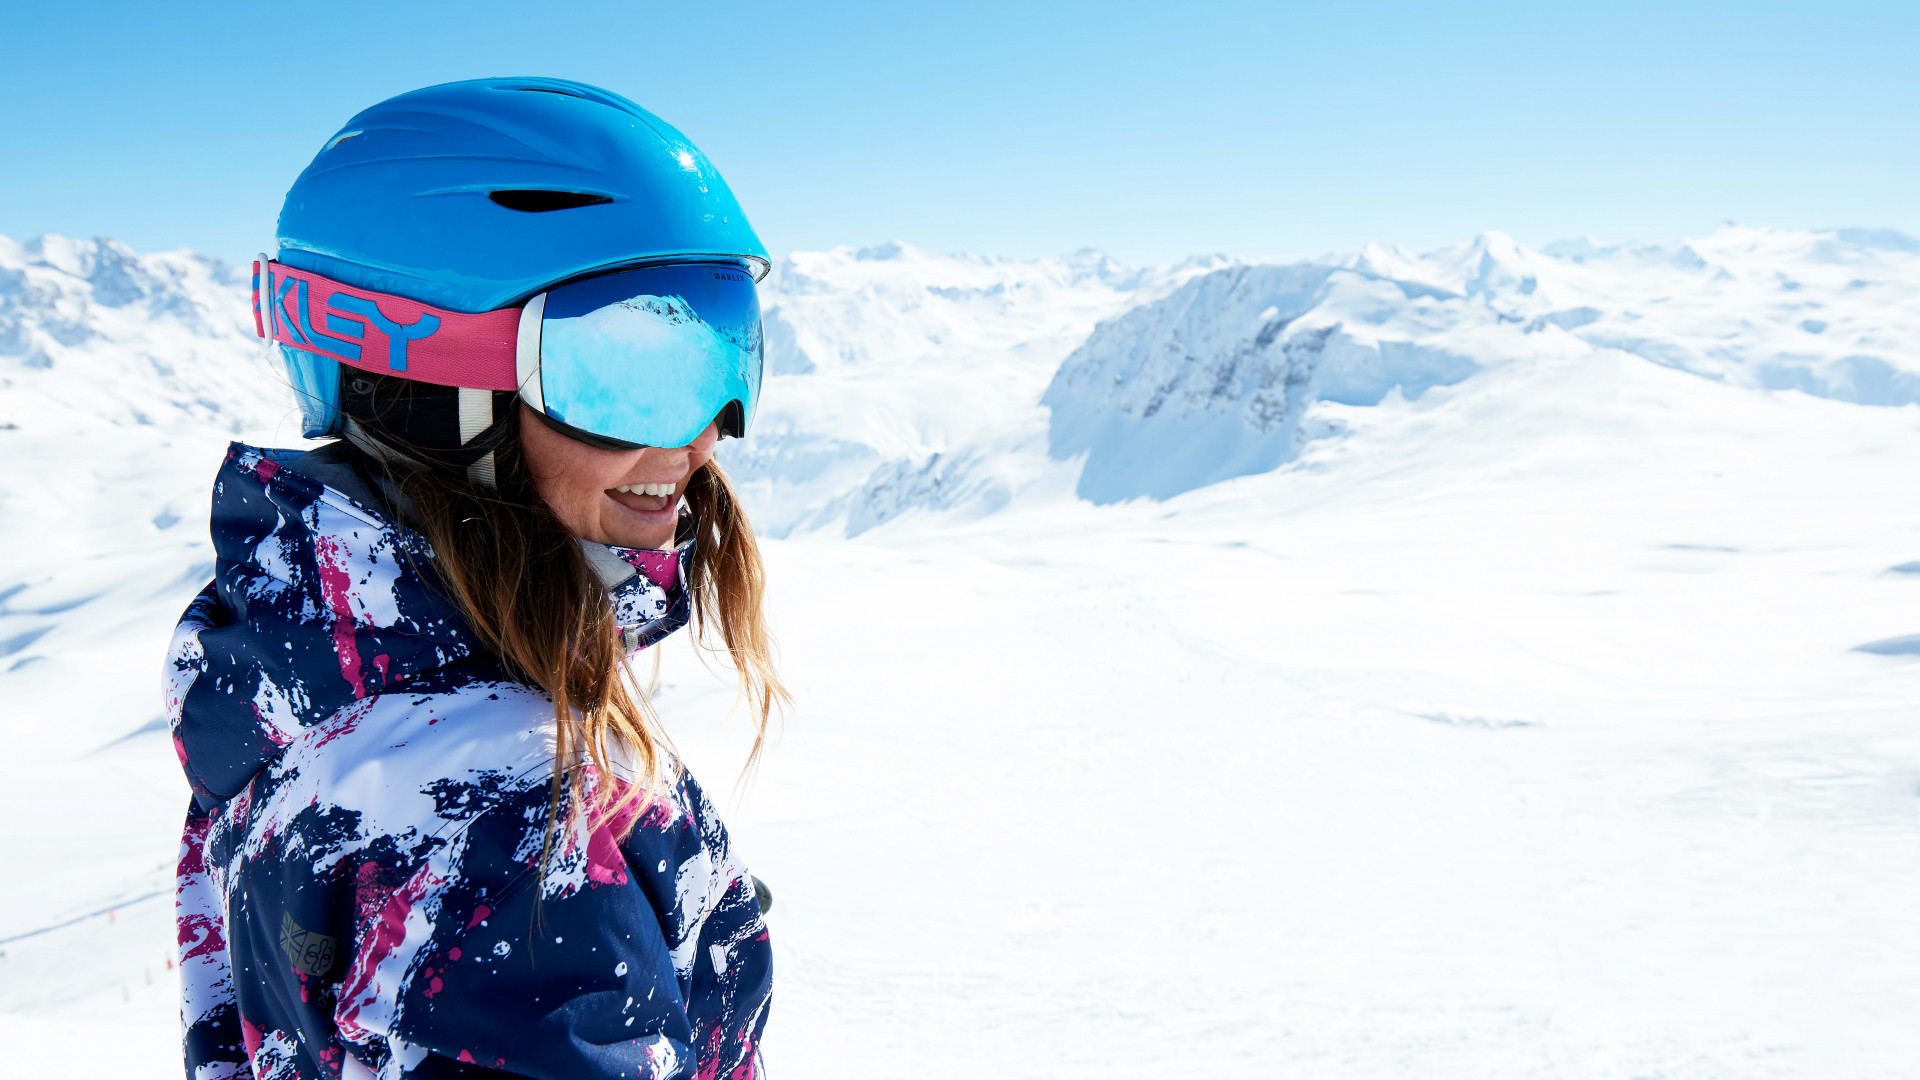 Find your winter moments with Crystal Ski Holidays